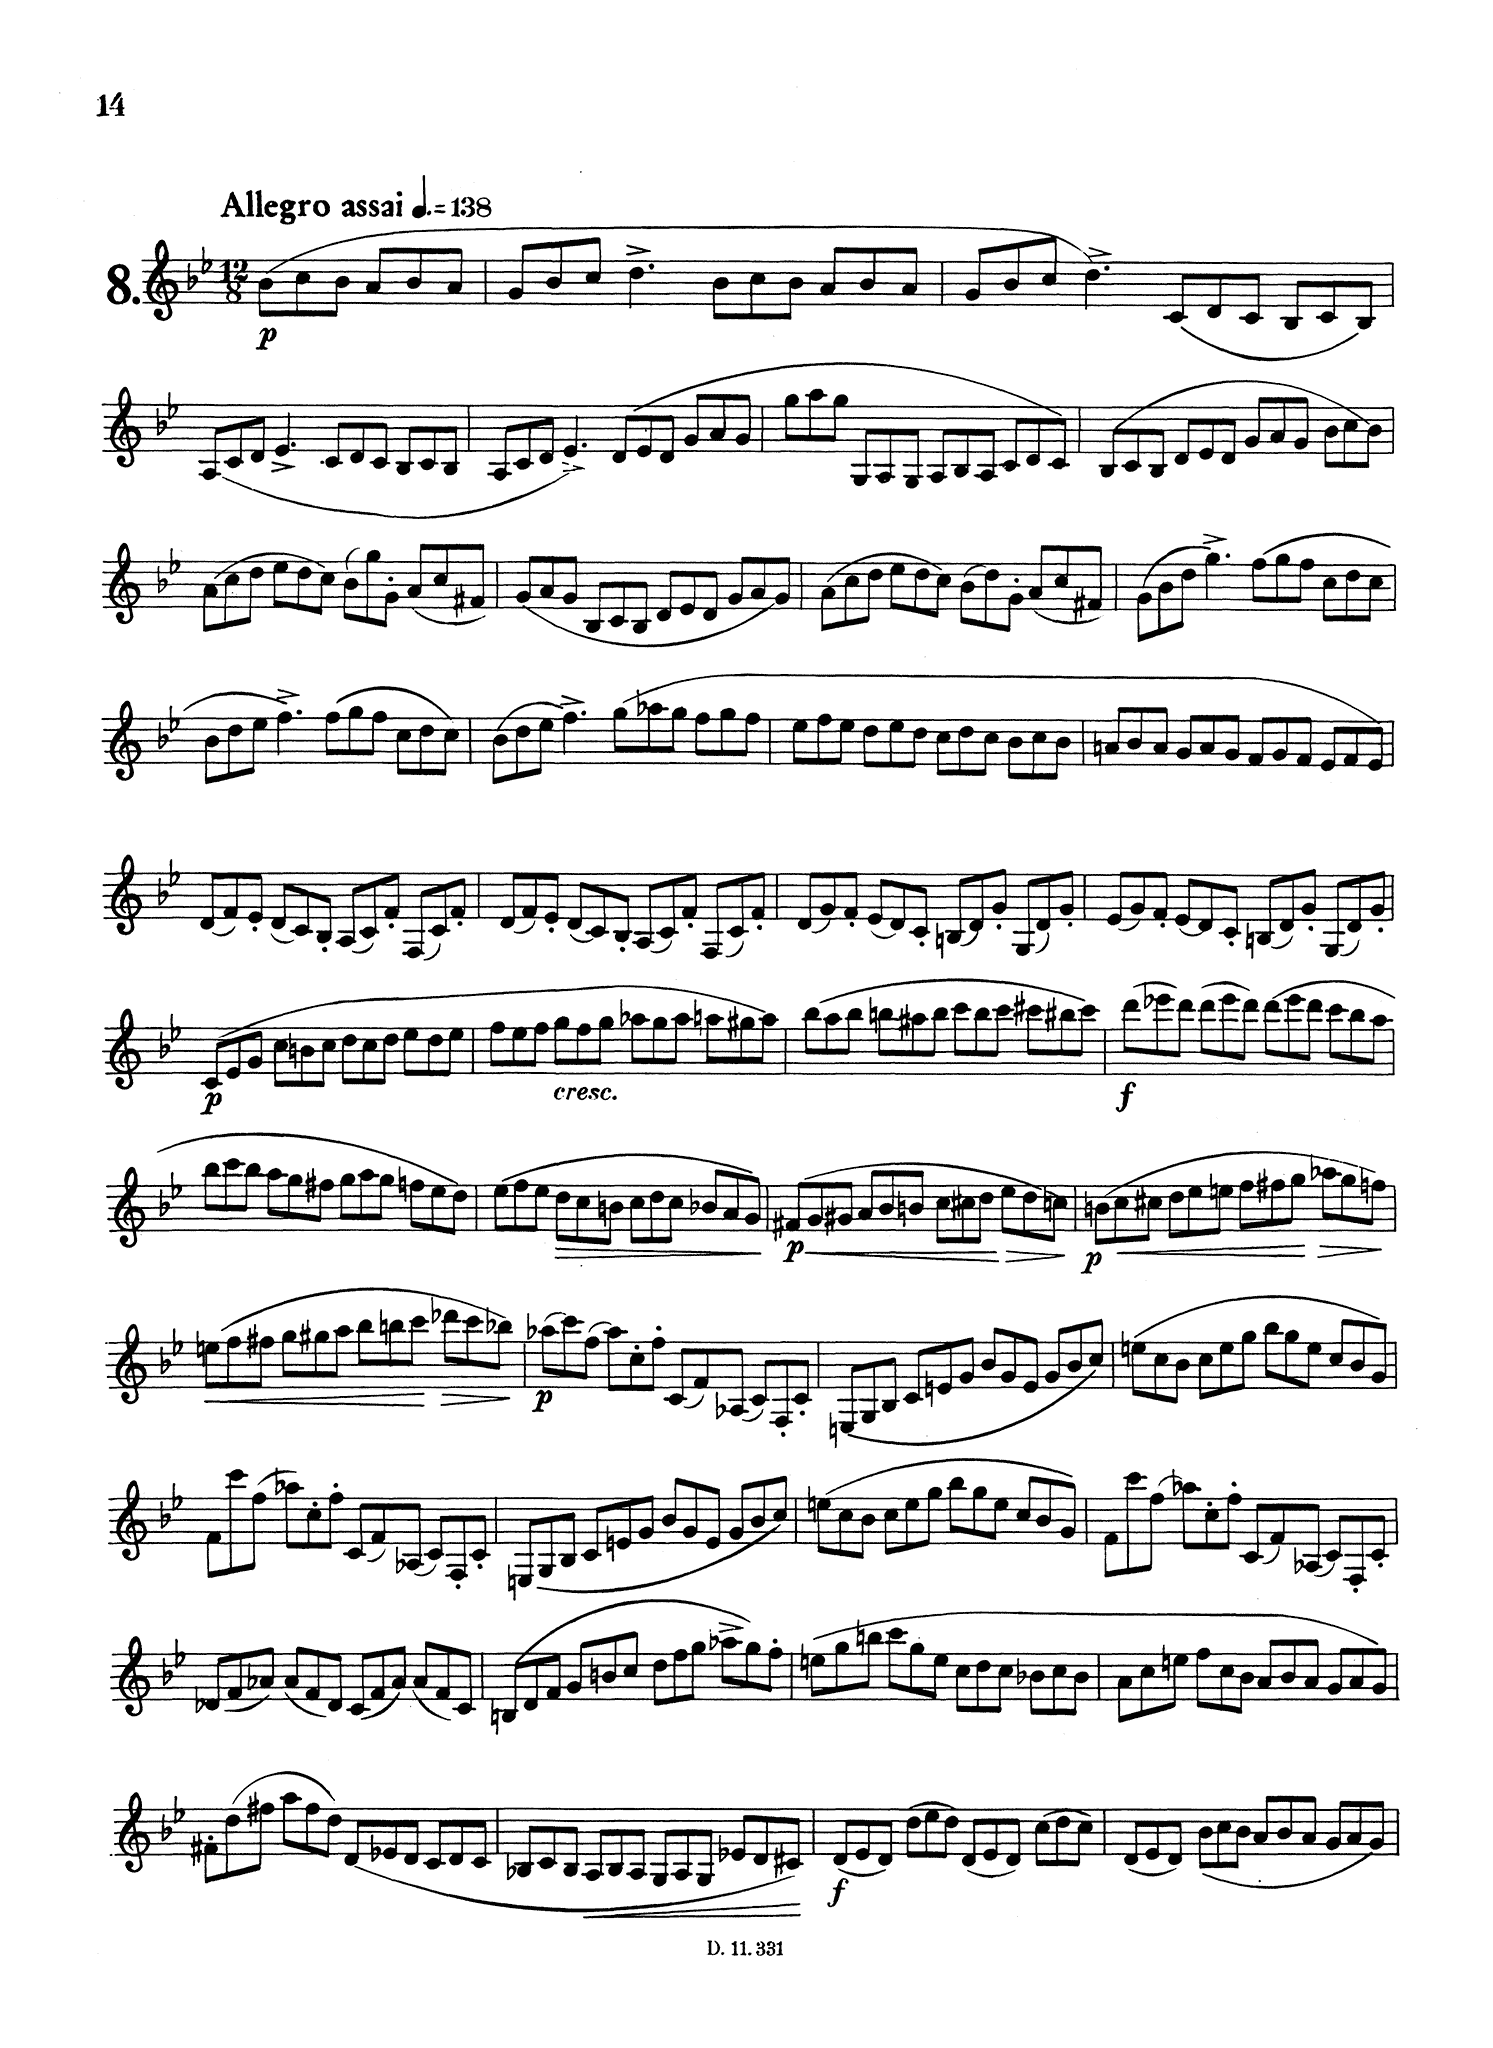 Gambaro 10 Caprices for Clarinet, Op. 9 Page 14